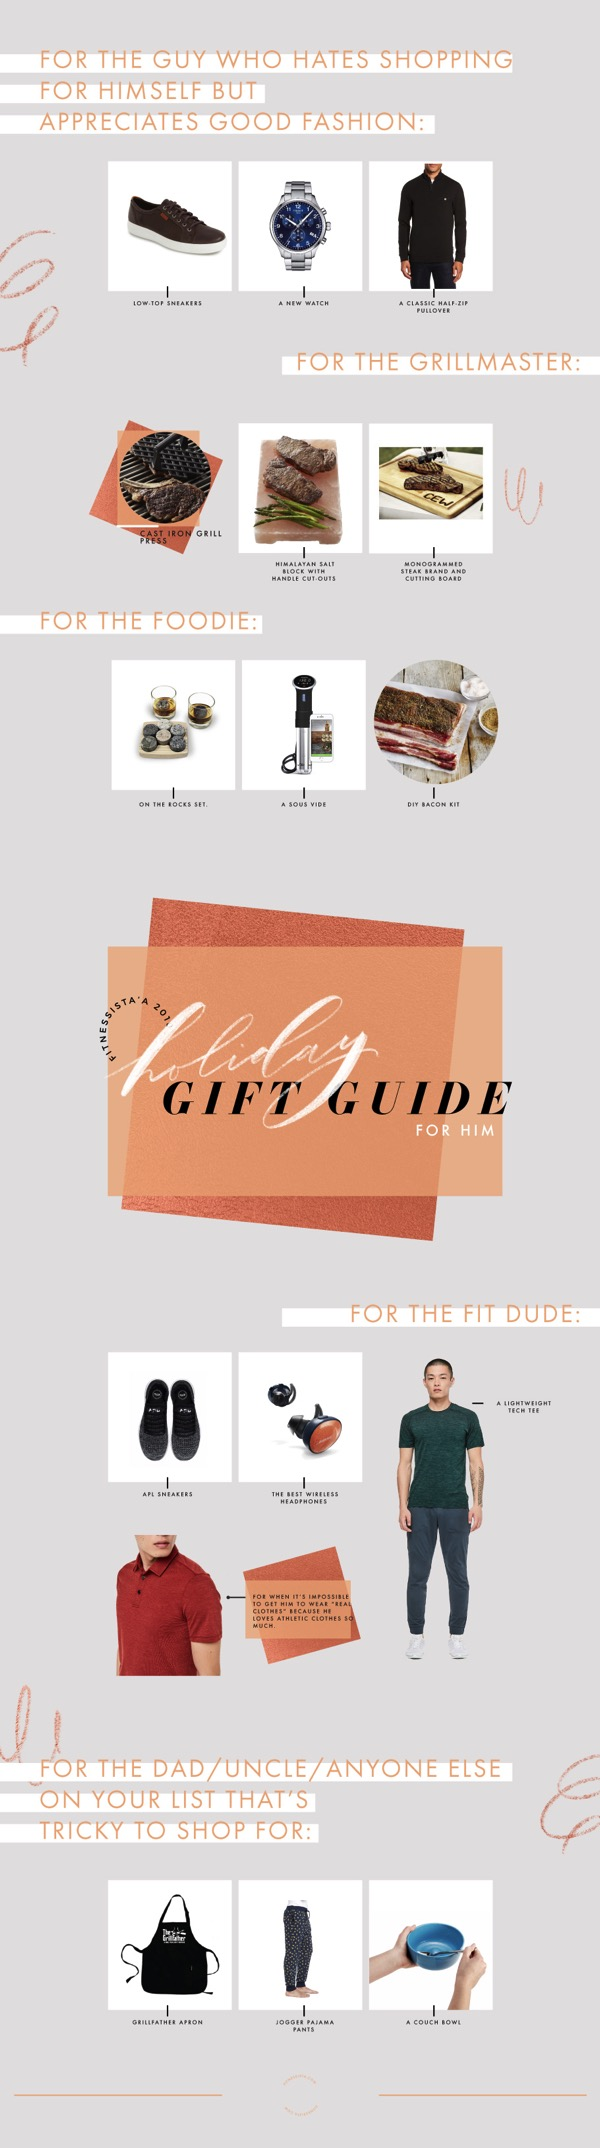 Holiday Gift Guide 2018 For Him. This is a gift guide for the husband, boyfriend, brother, best friend, Uncle, or Dad on your list. It can be so hard to shop for men, and there are lots of holiday gift ideas in this post! fitnessista.com